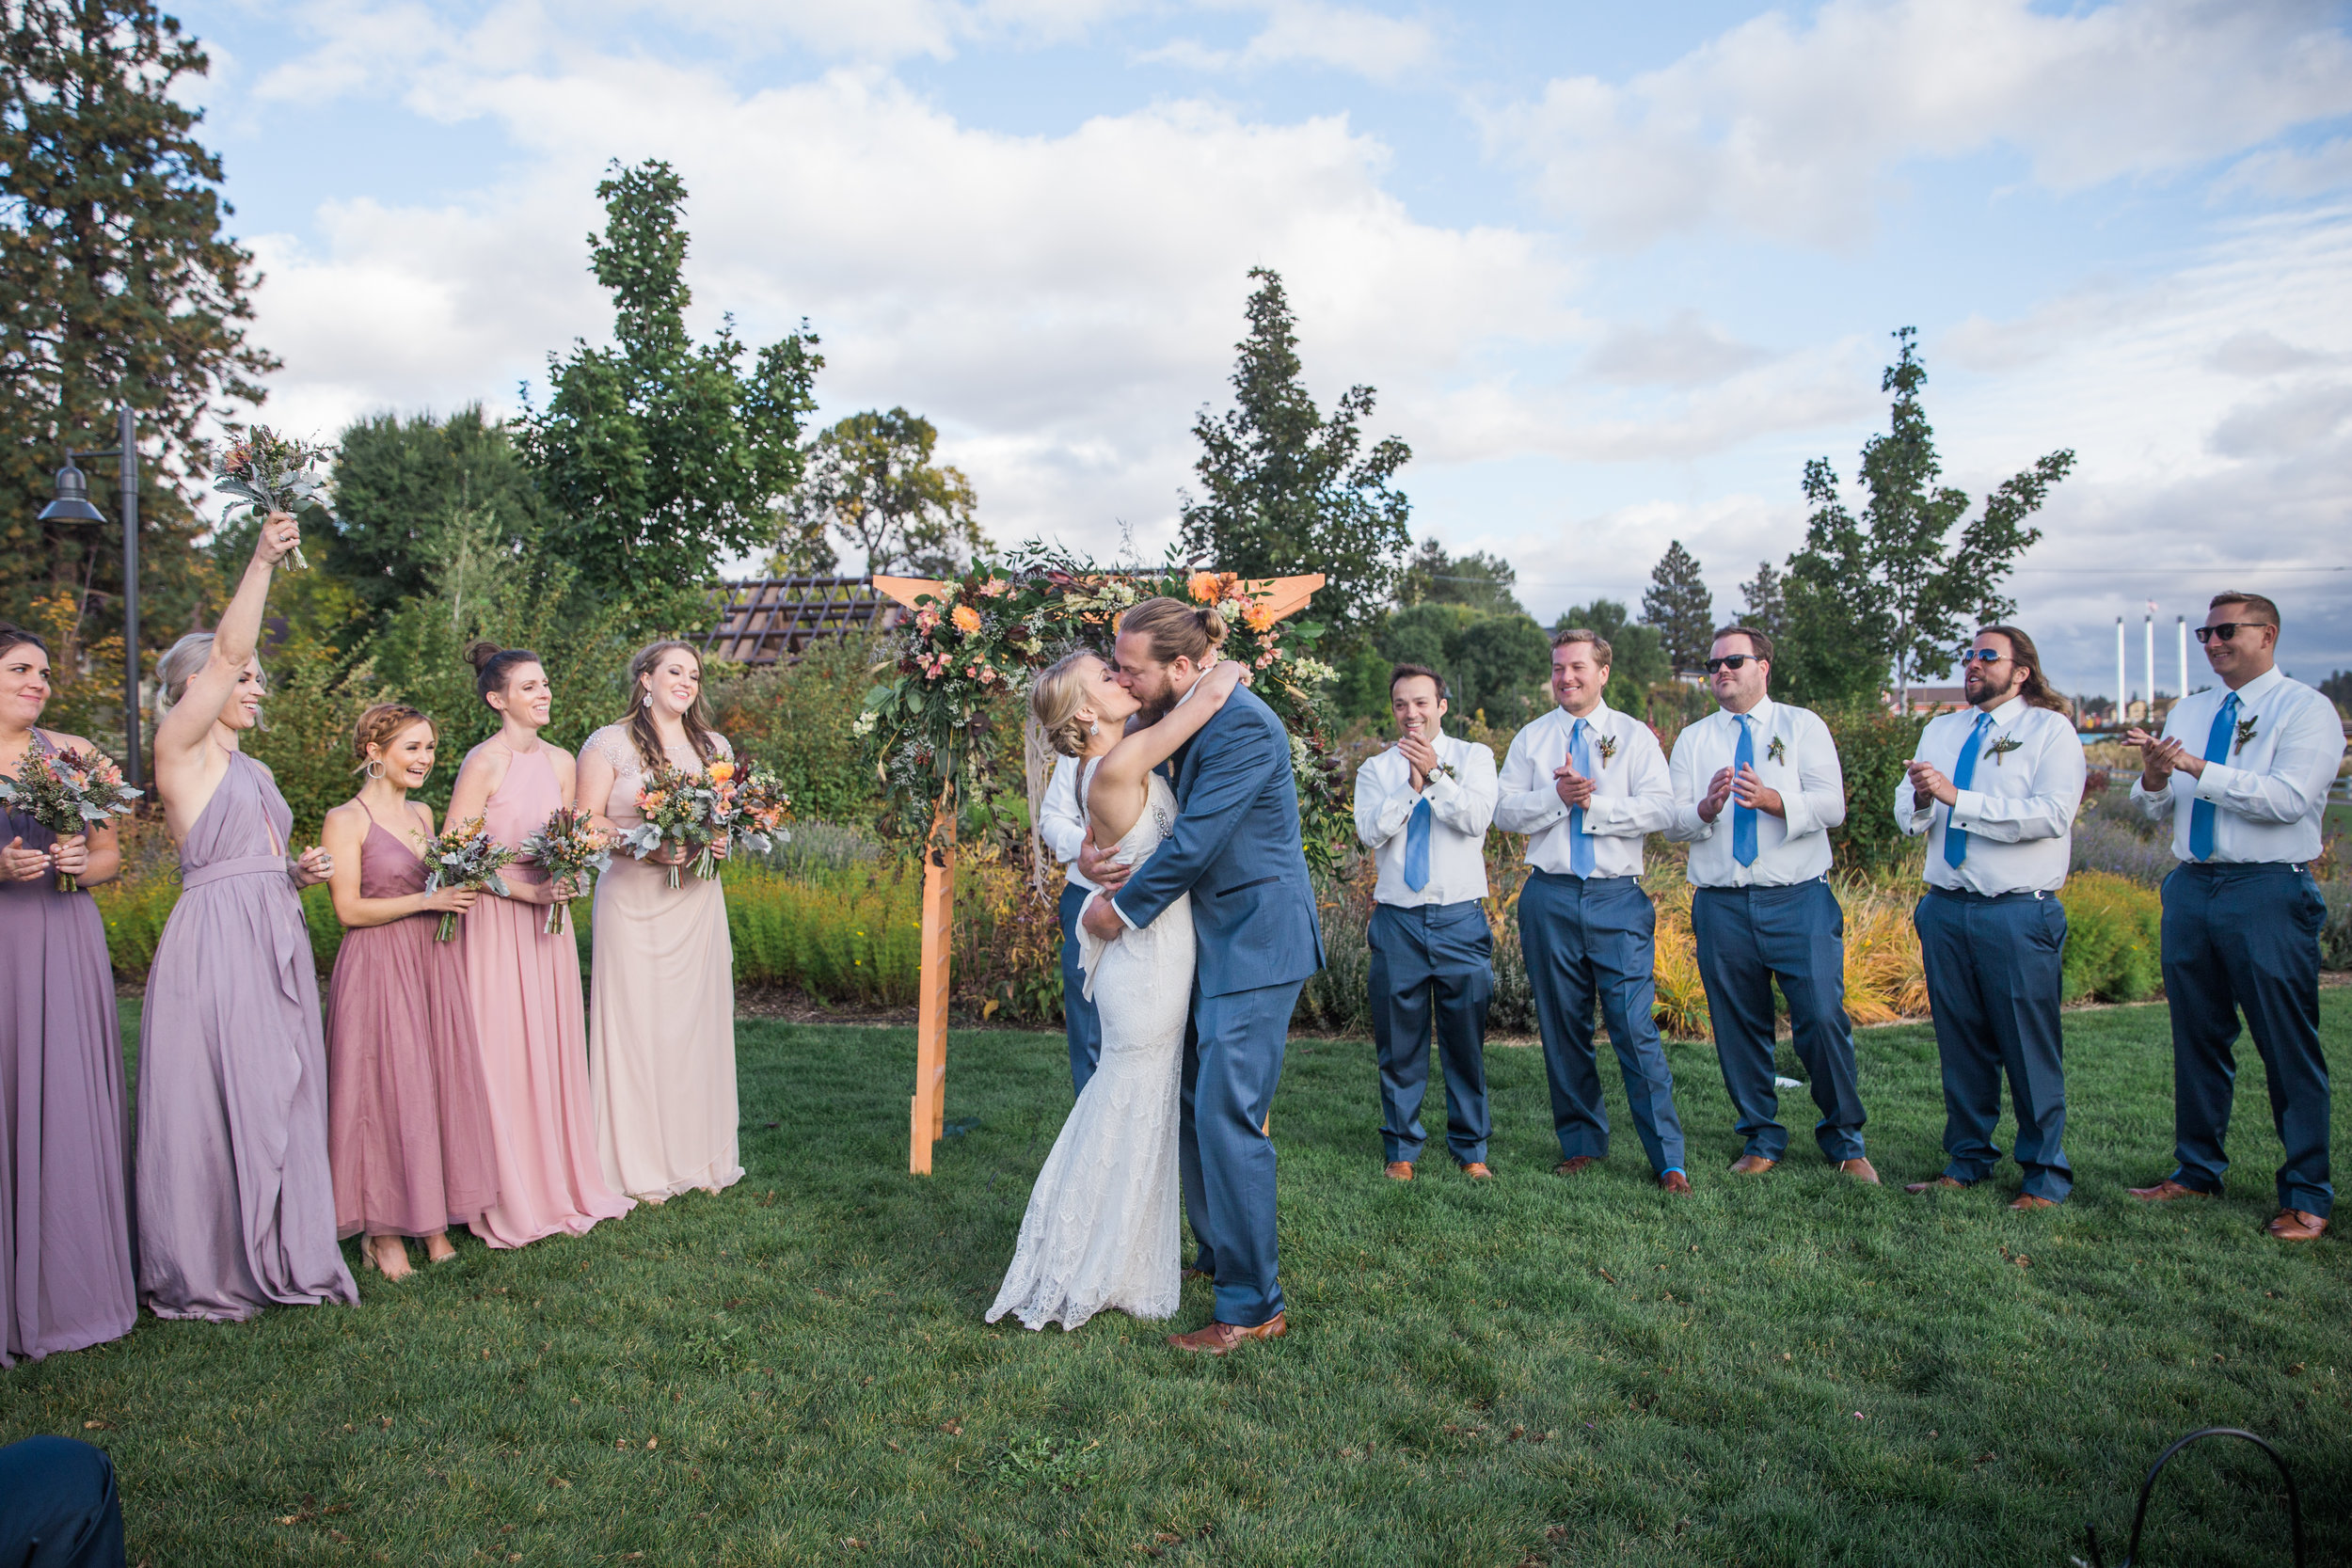 bend, oregon wedding photographer you may now kiss the bride